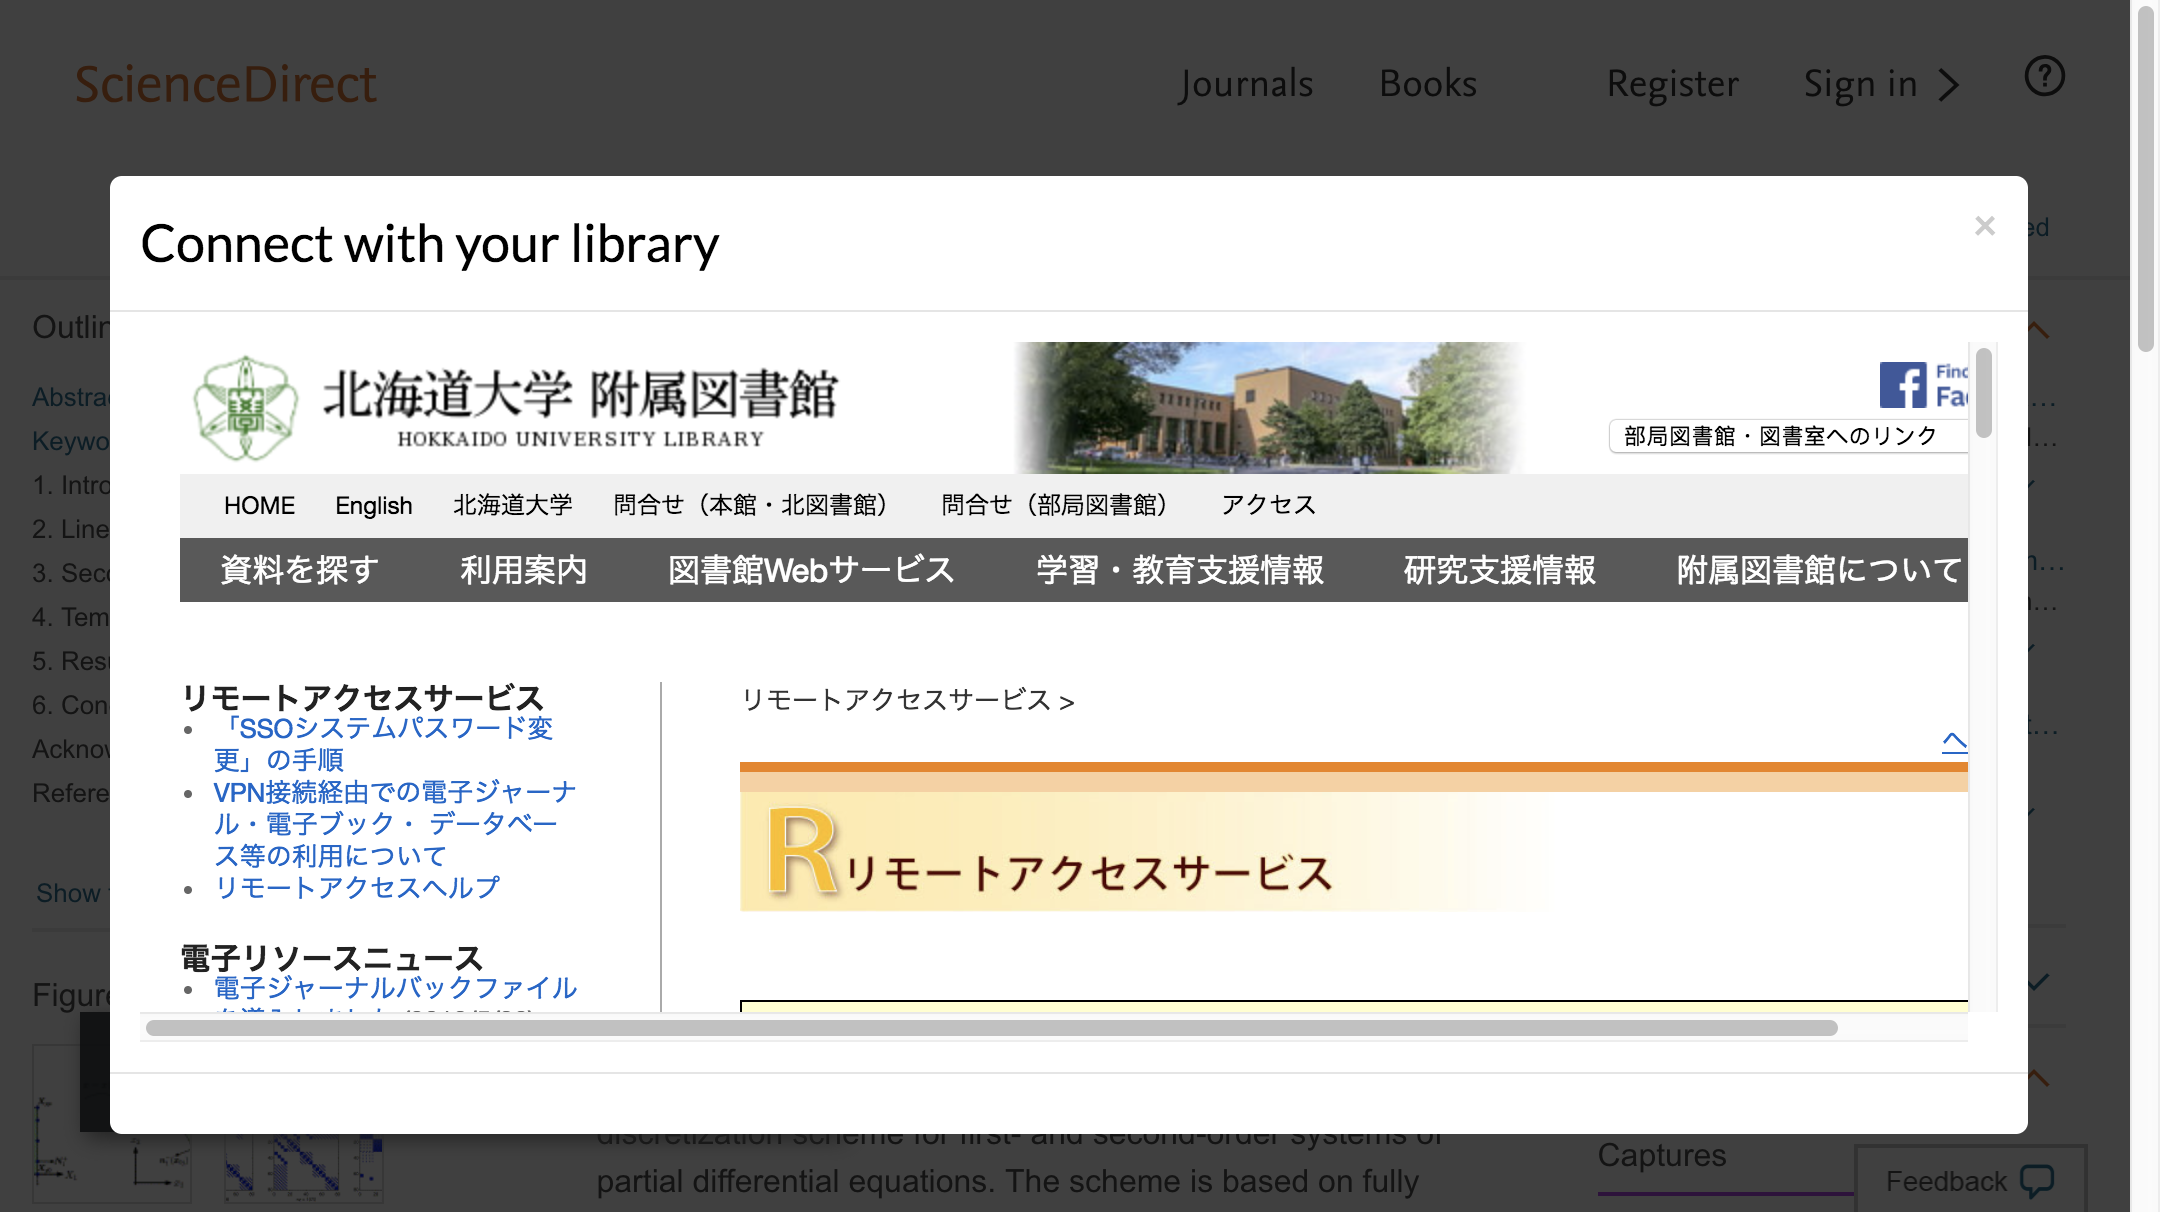 Enter Hokkaido University credentials to access journal subscriptions.